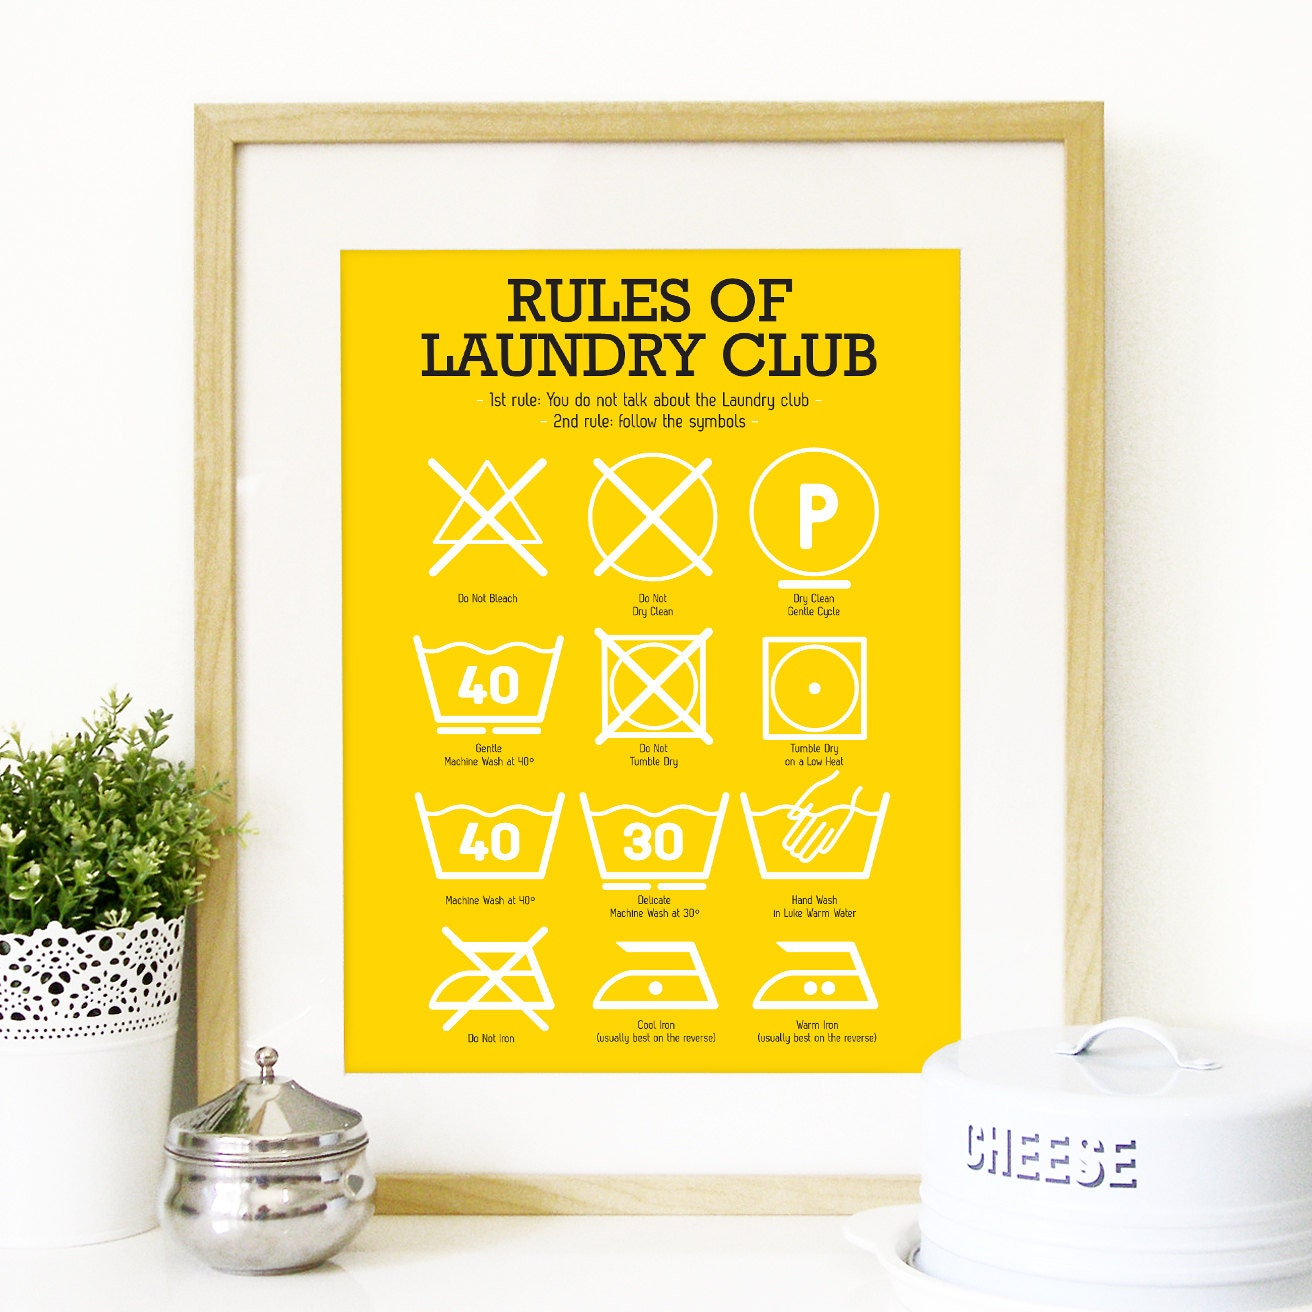 Laundry Symbols Wall Art Kitchen Laundry Club Poster Art With Laundry Symbols Explained